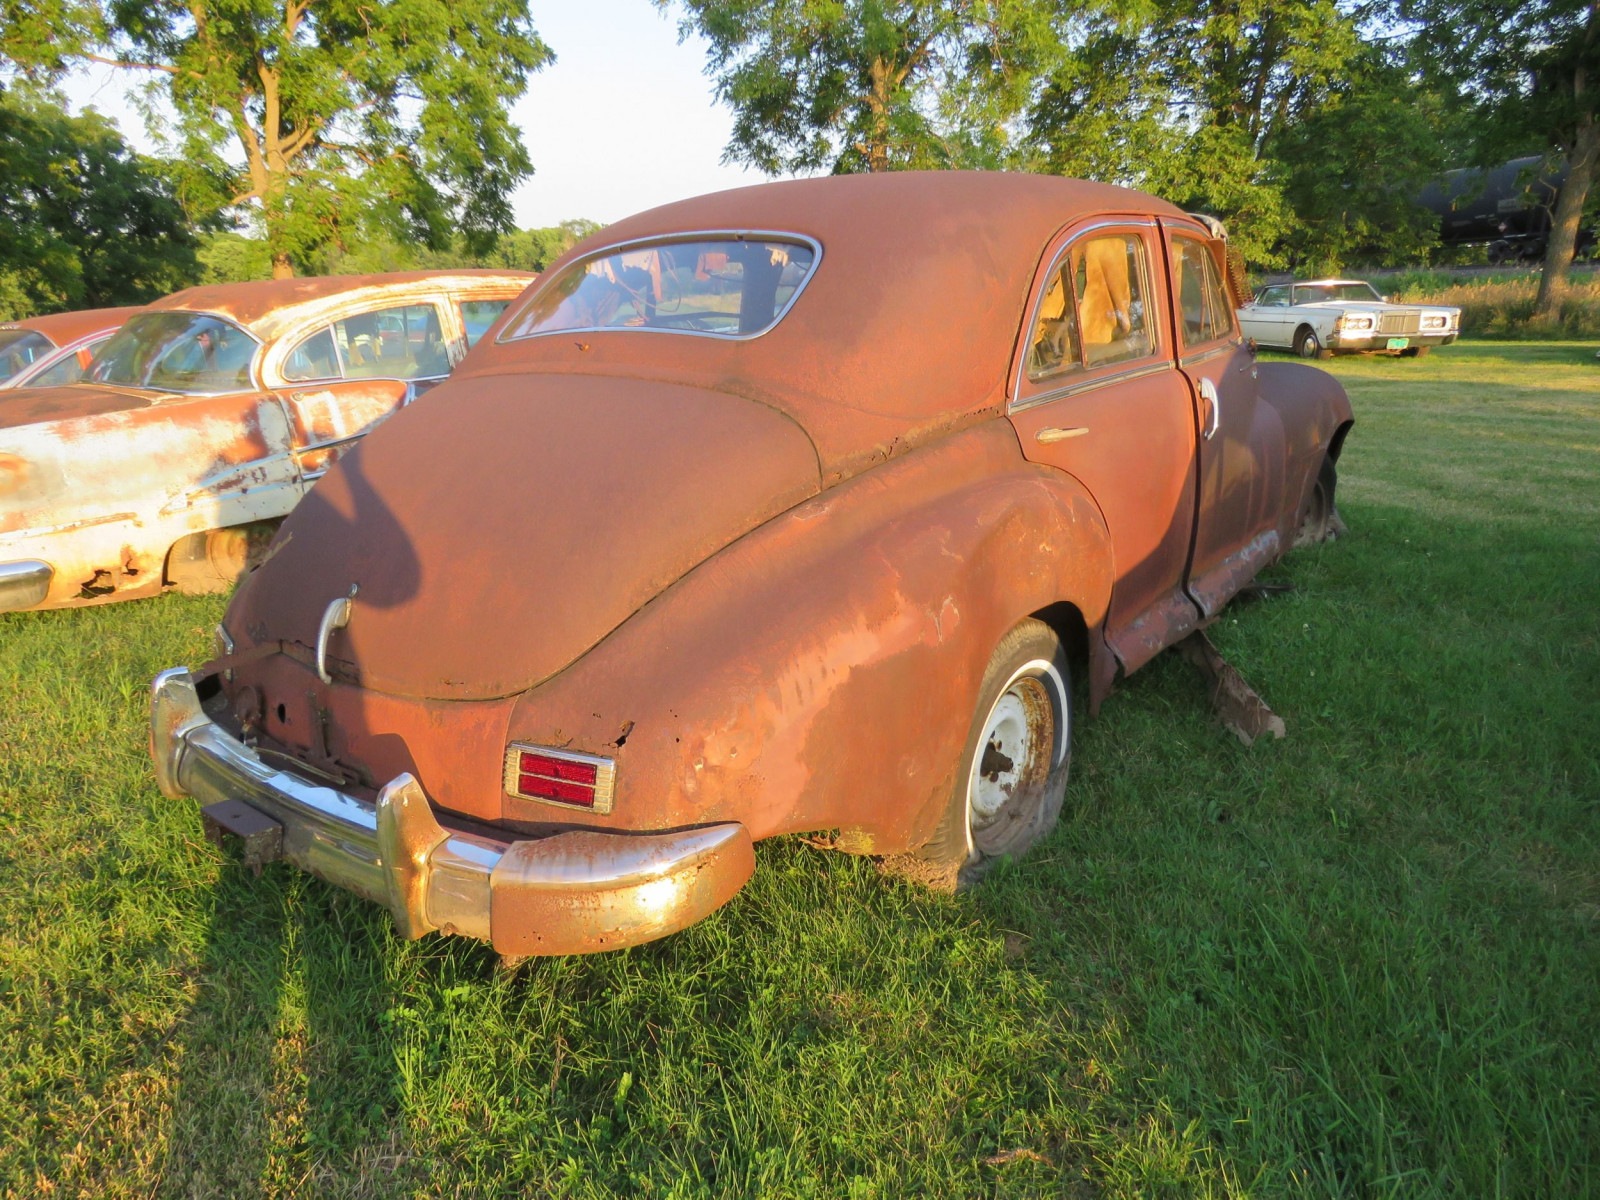 1948 Packard Sedan for parts - Image 5